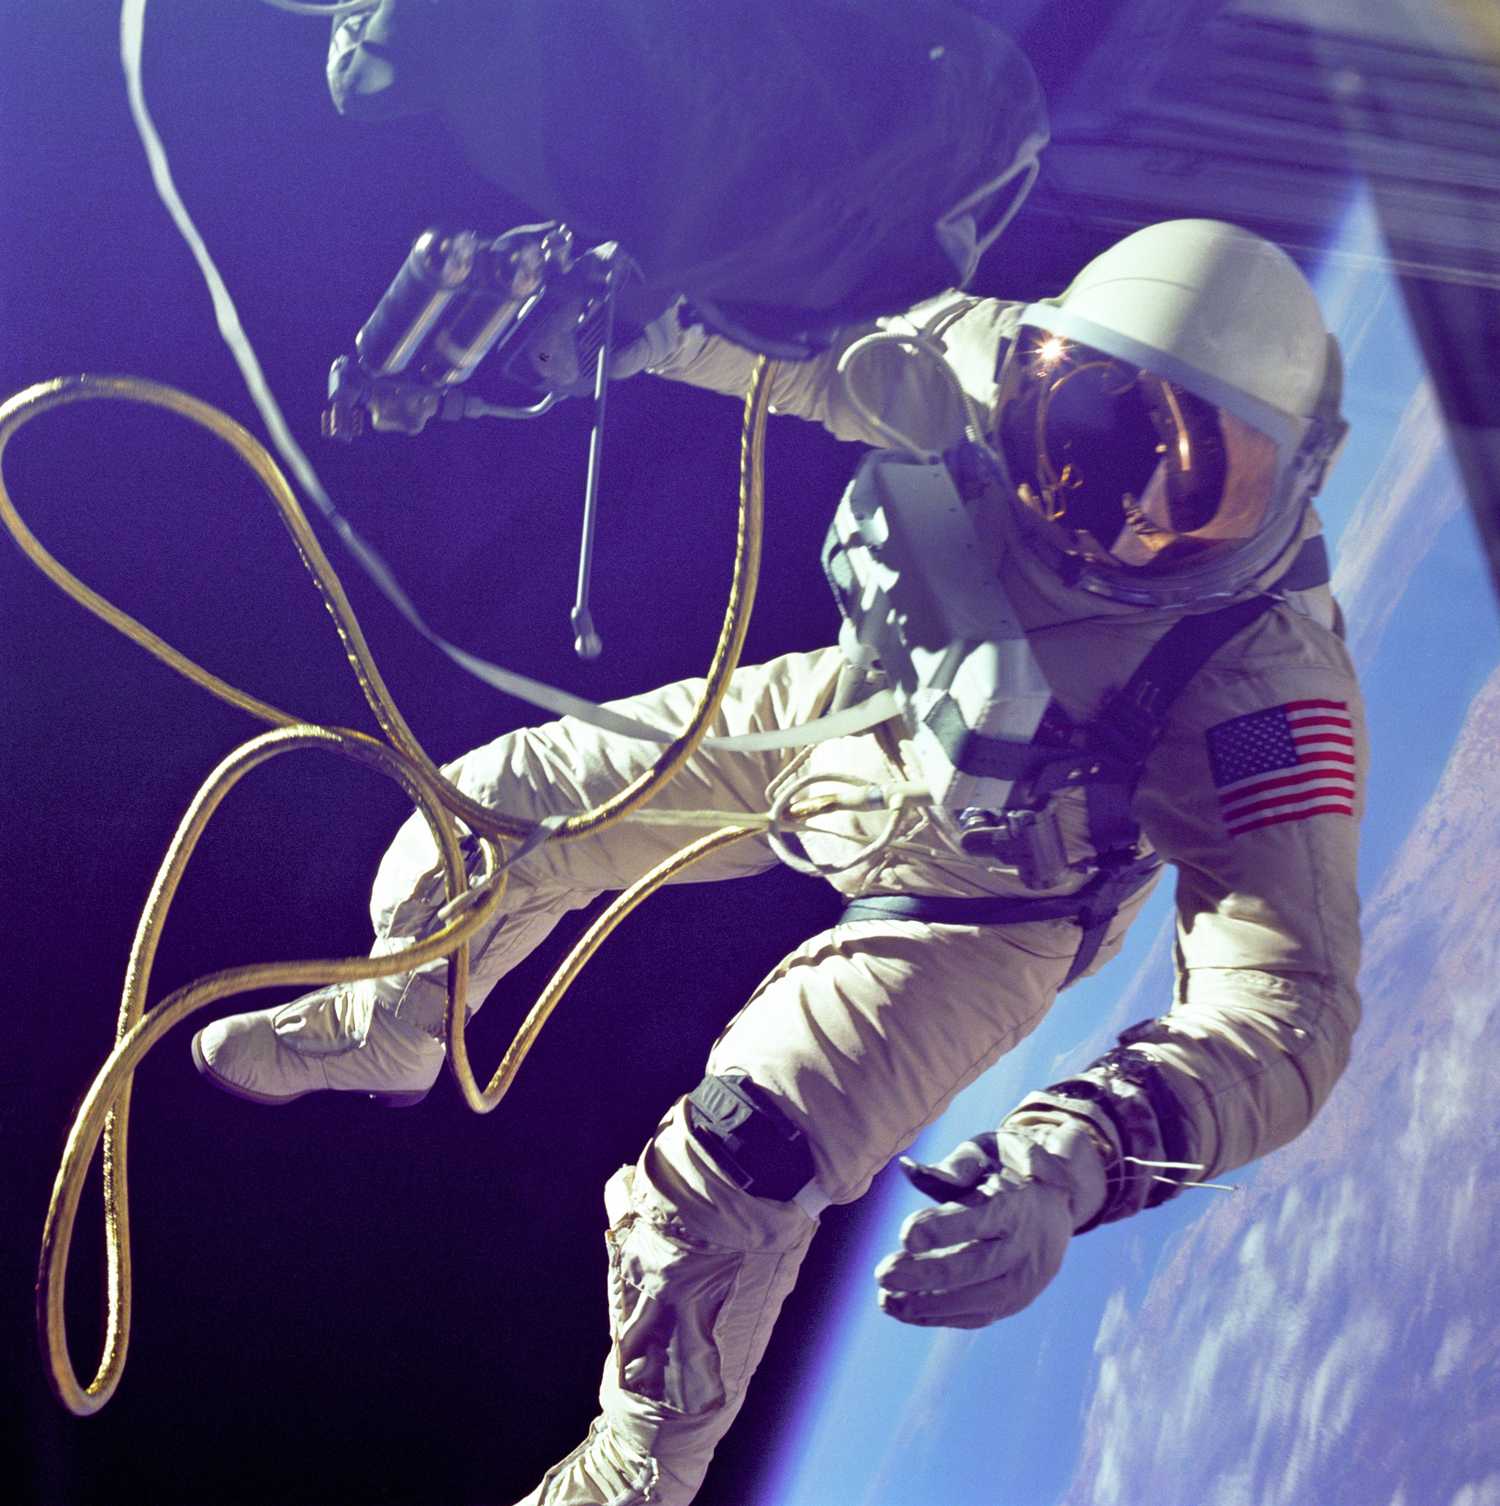 first american astronaut to walk in space - photo #4